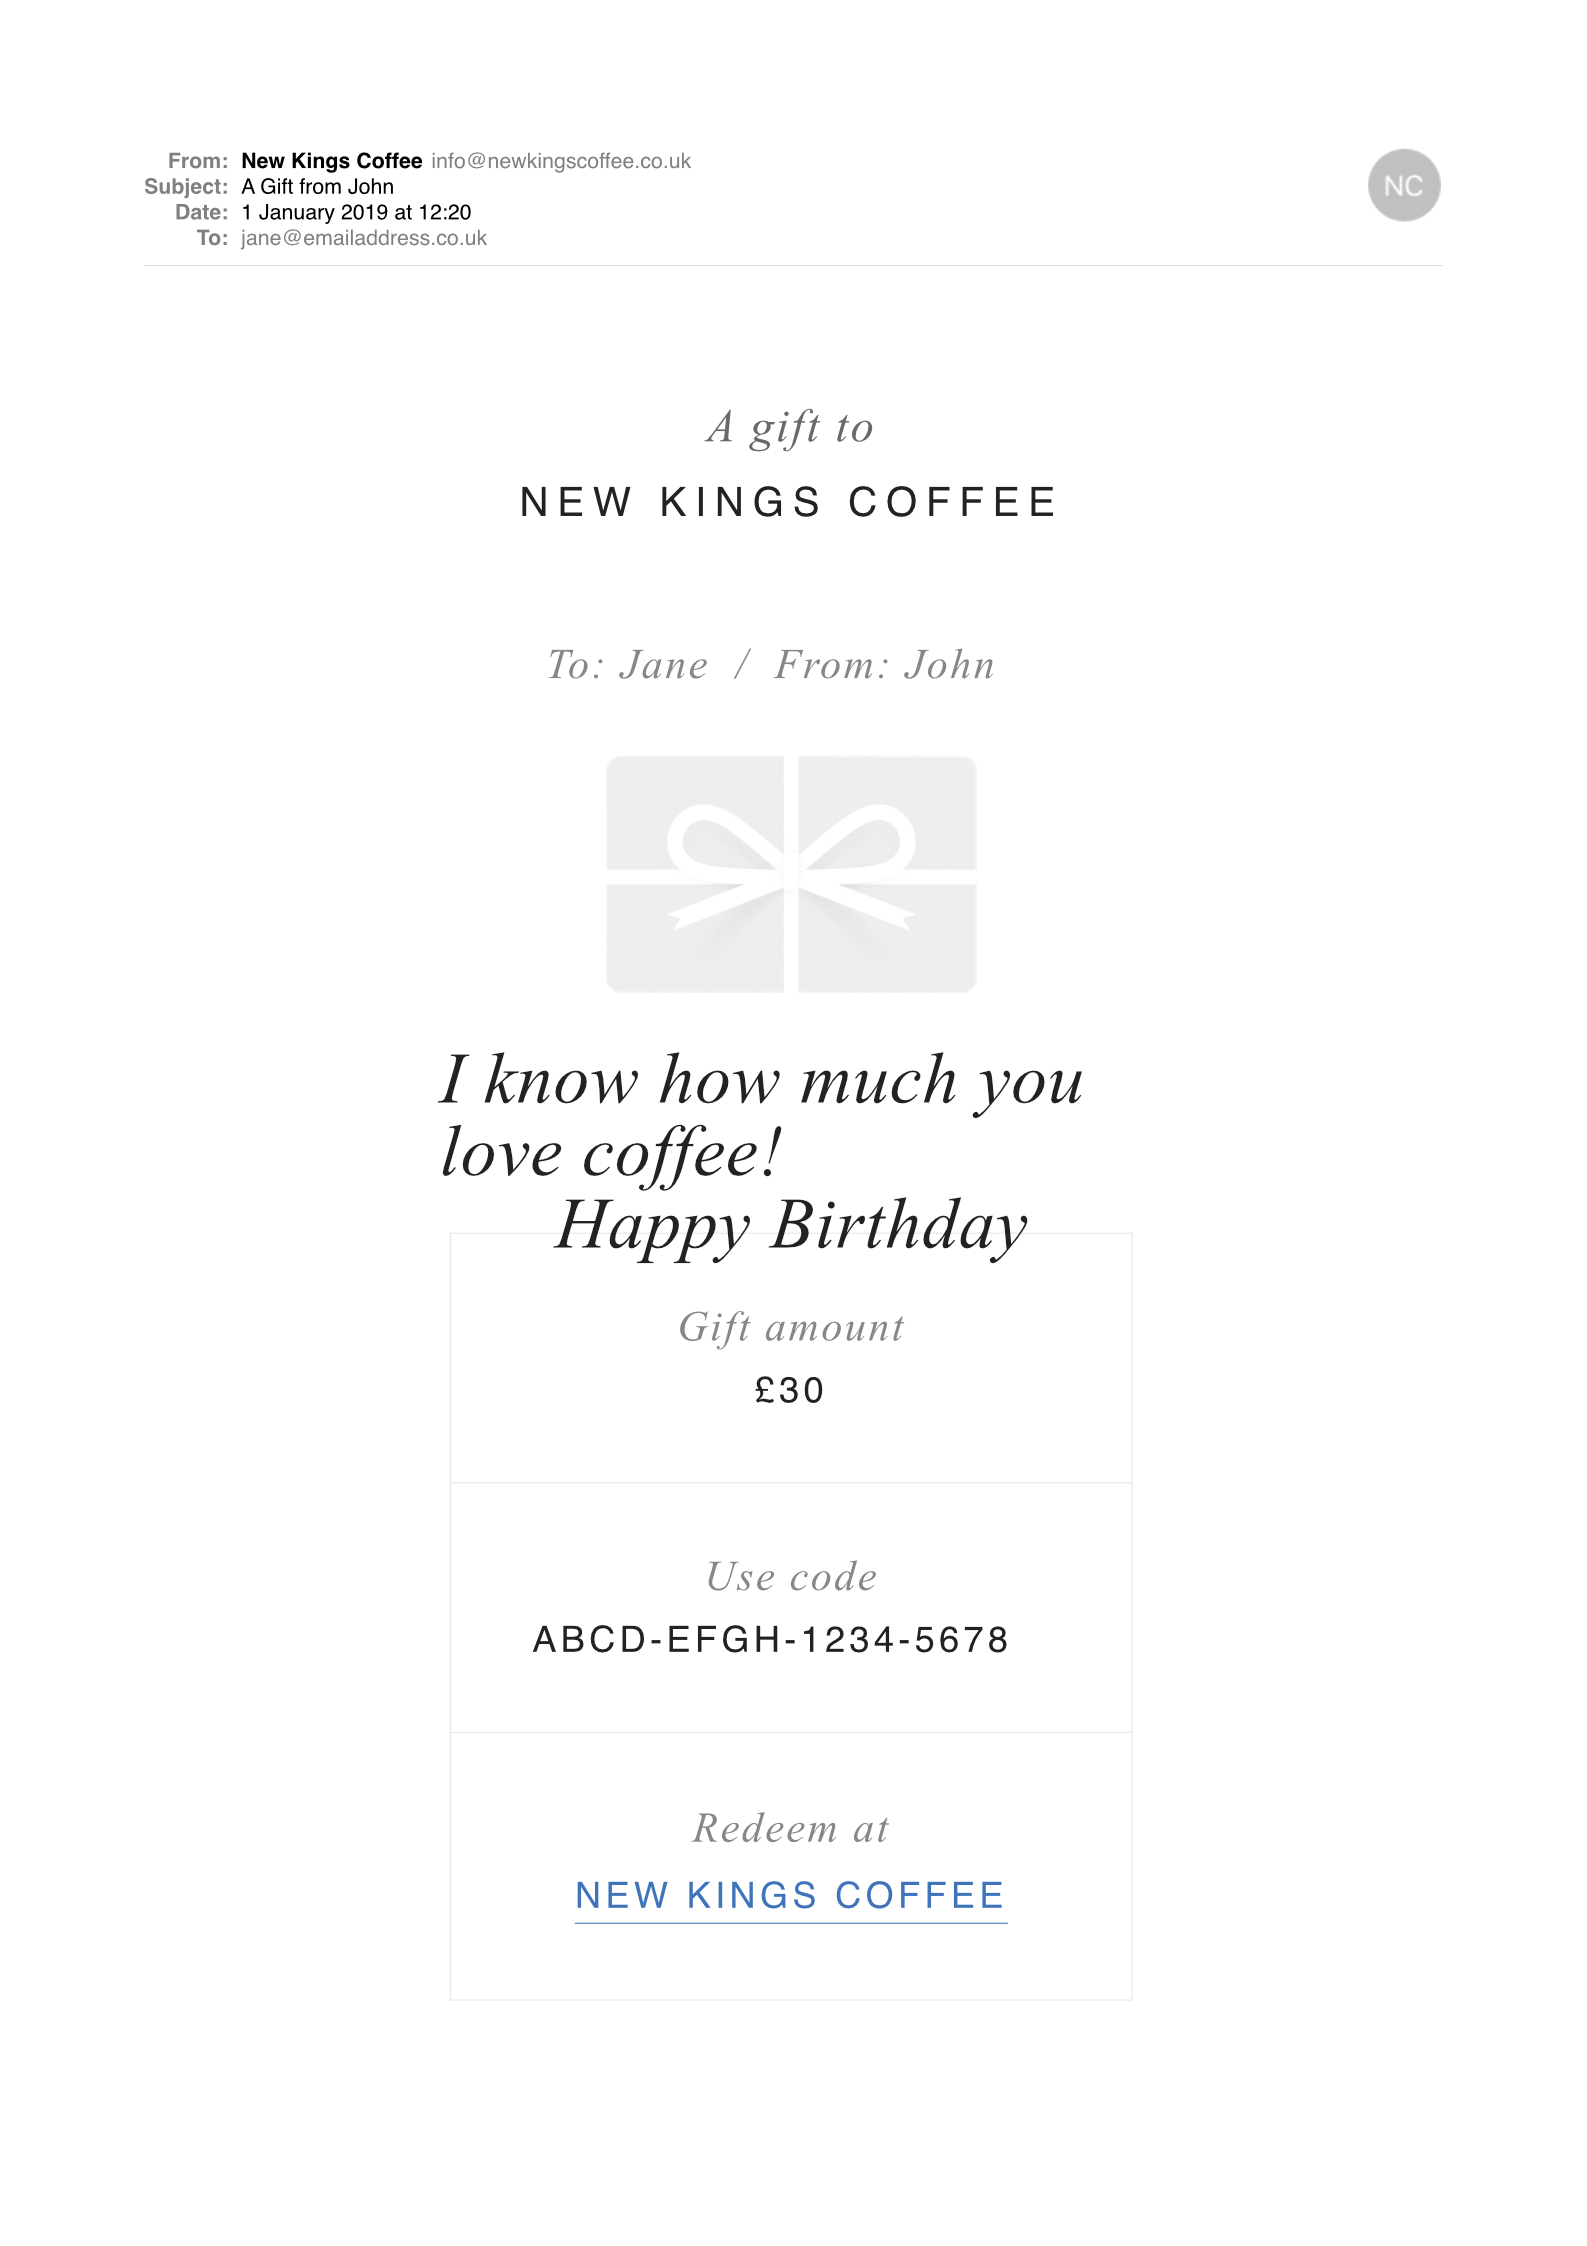 Gift card email example.jpg